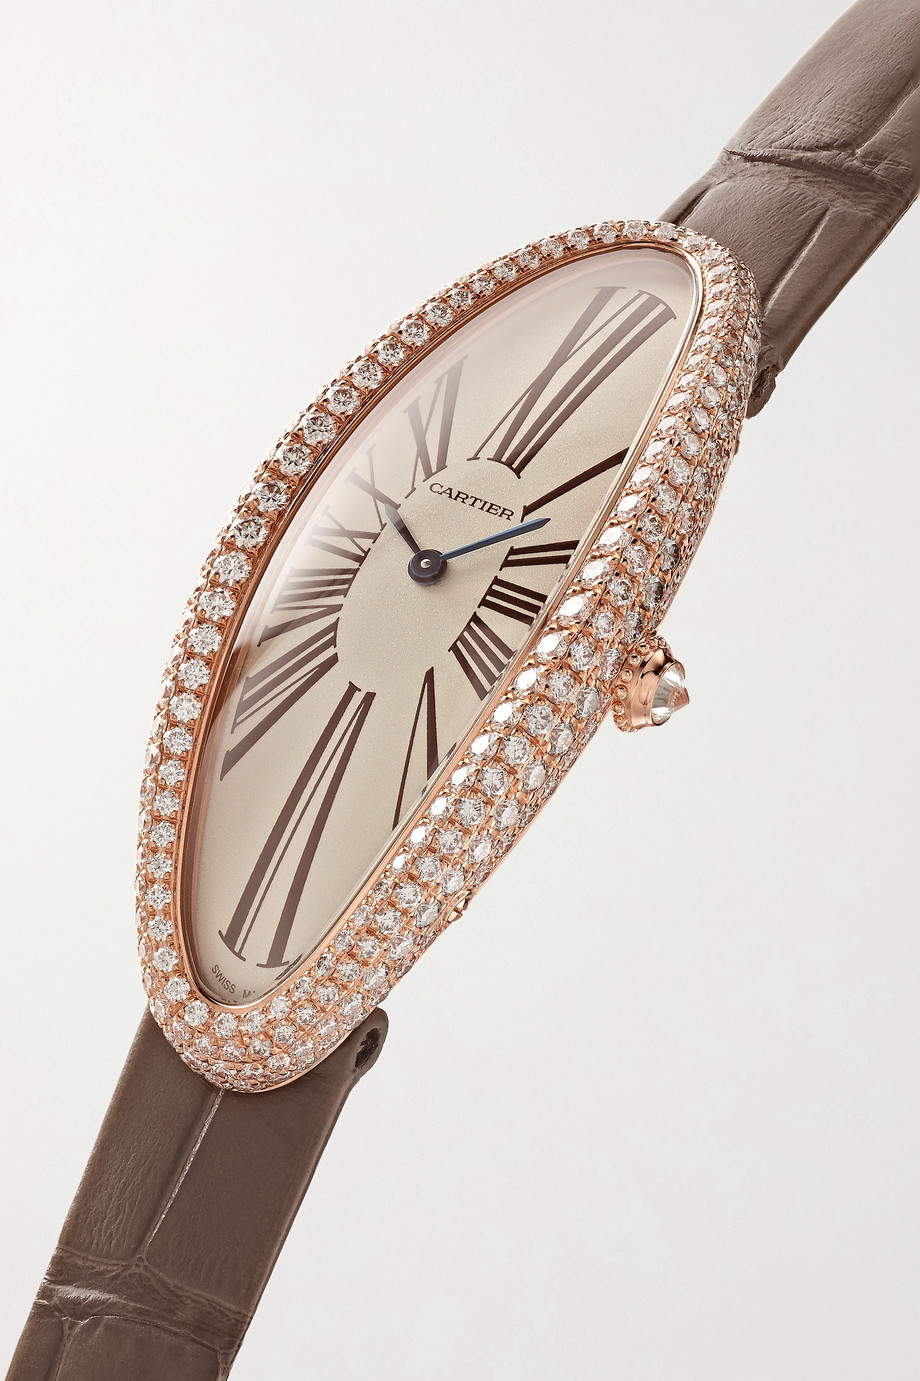 Cartier Baignoire Allongée 21mm medium 18-karat pink gold, alligator and diamond watch